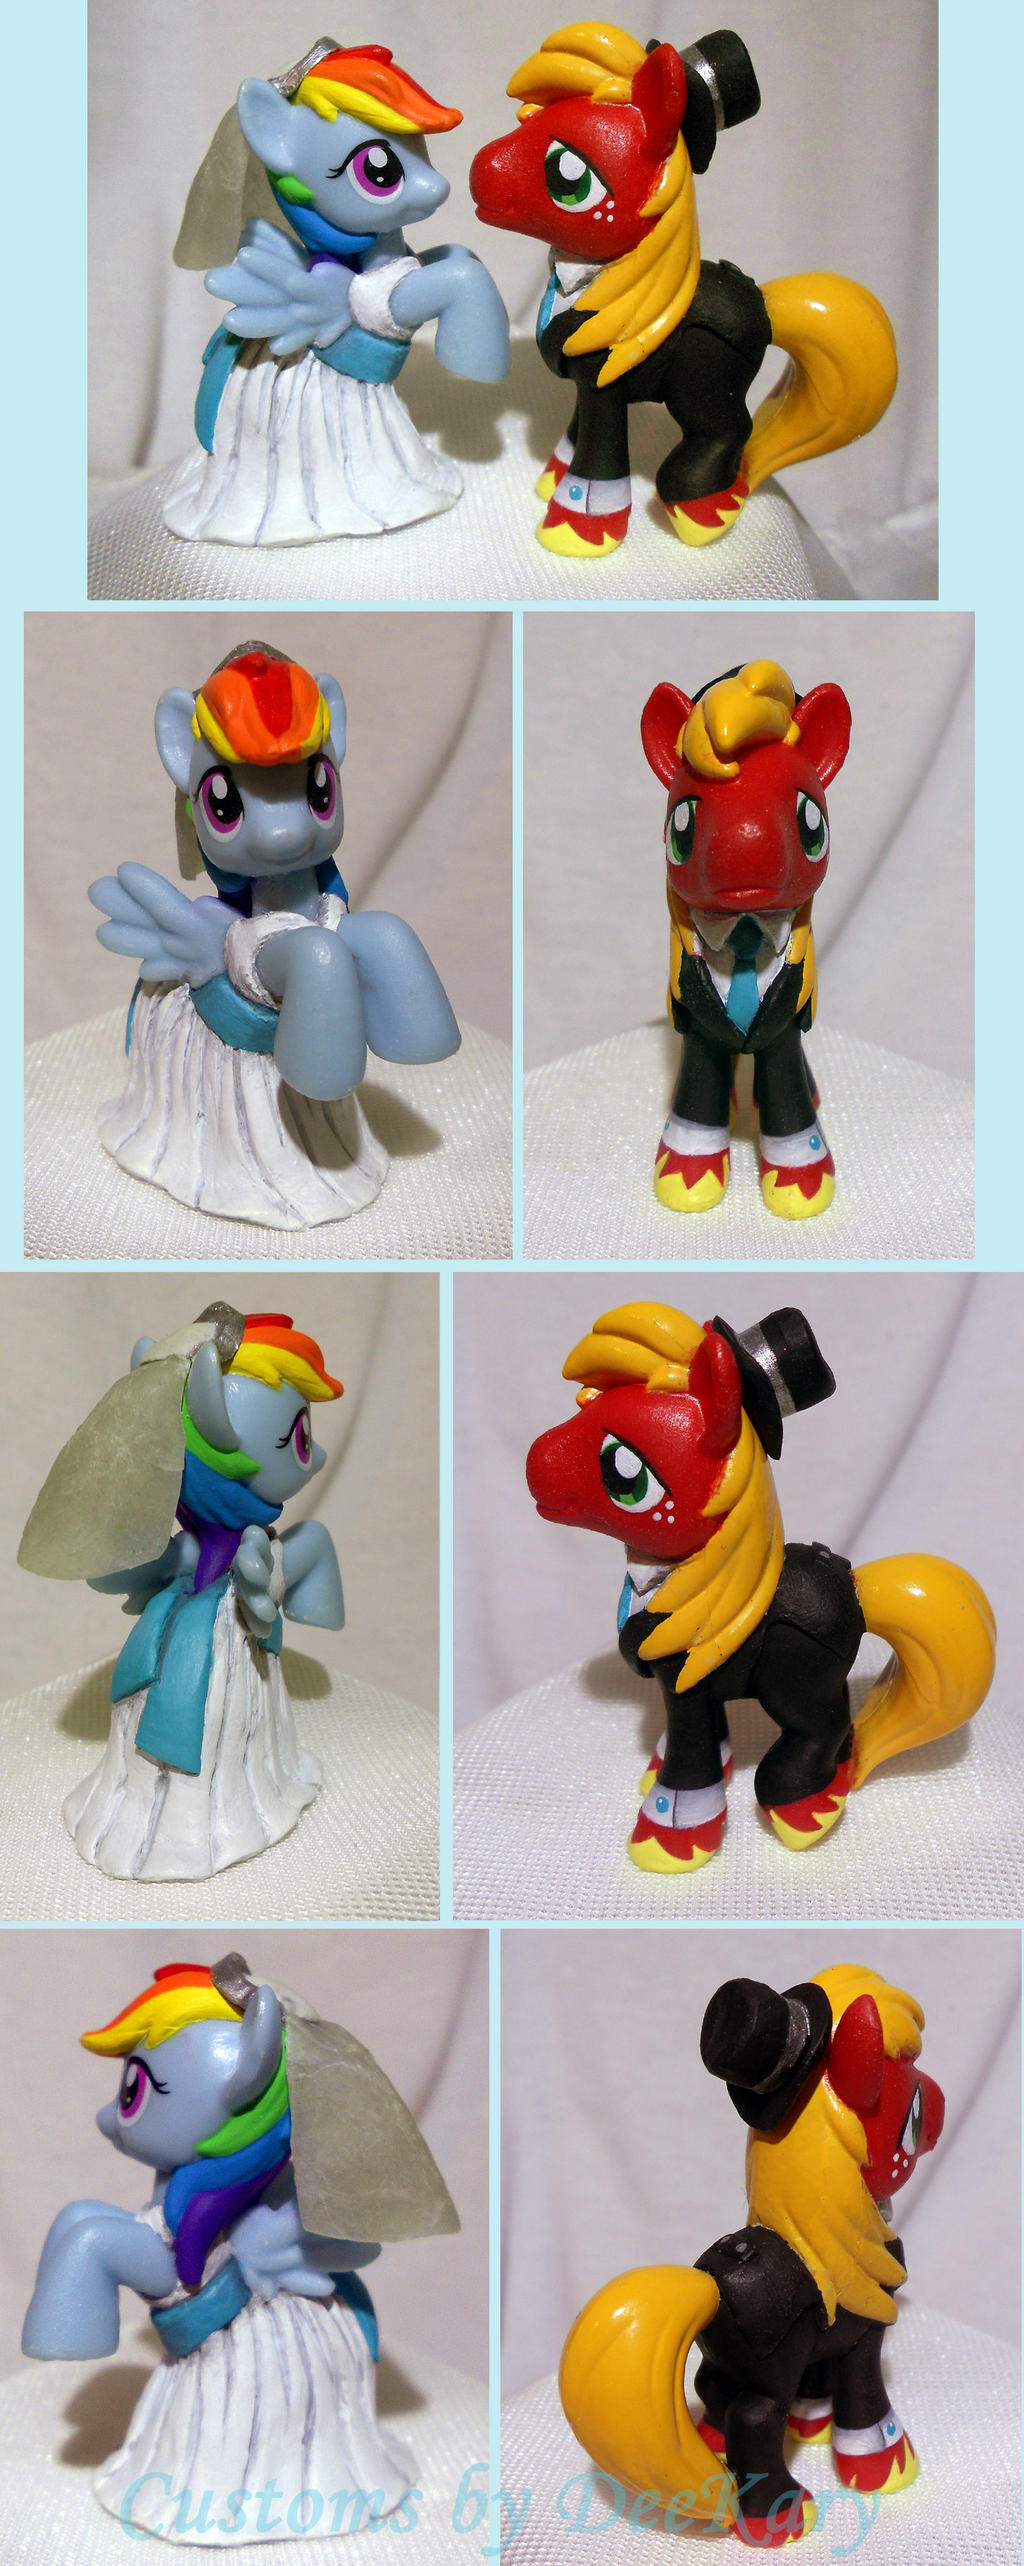 Blind Bag Wedding Cake Toppers - BigMac and RD